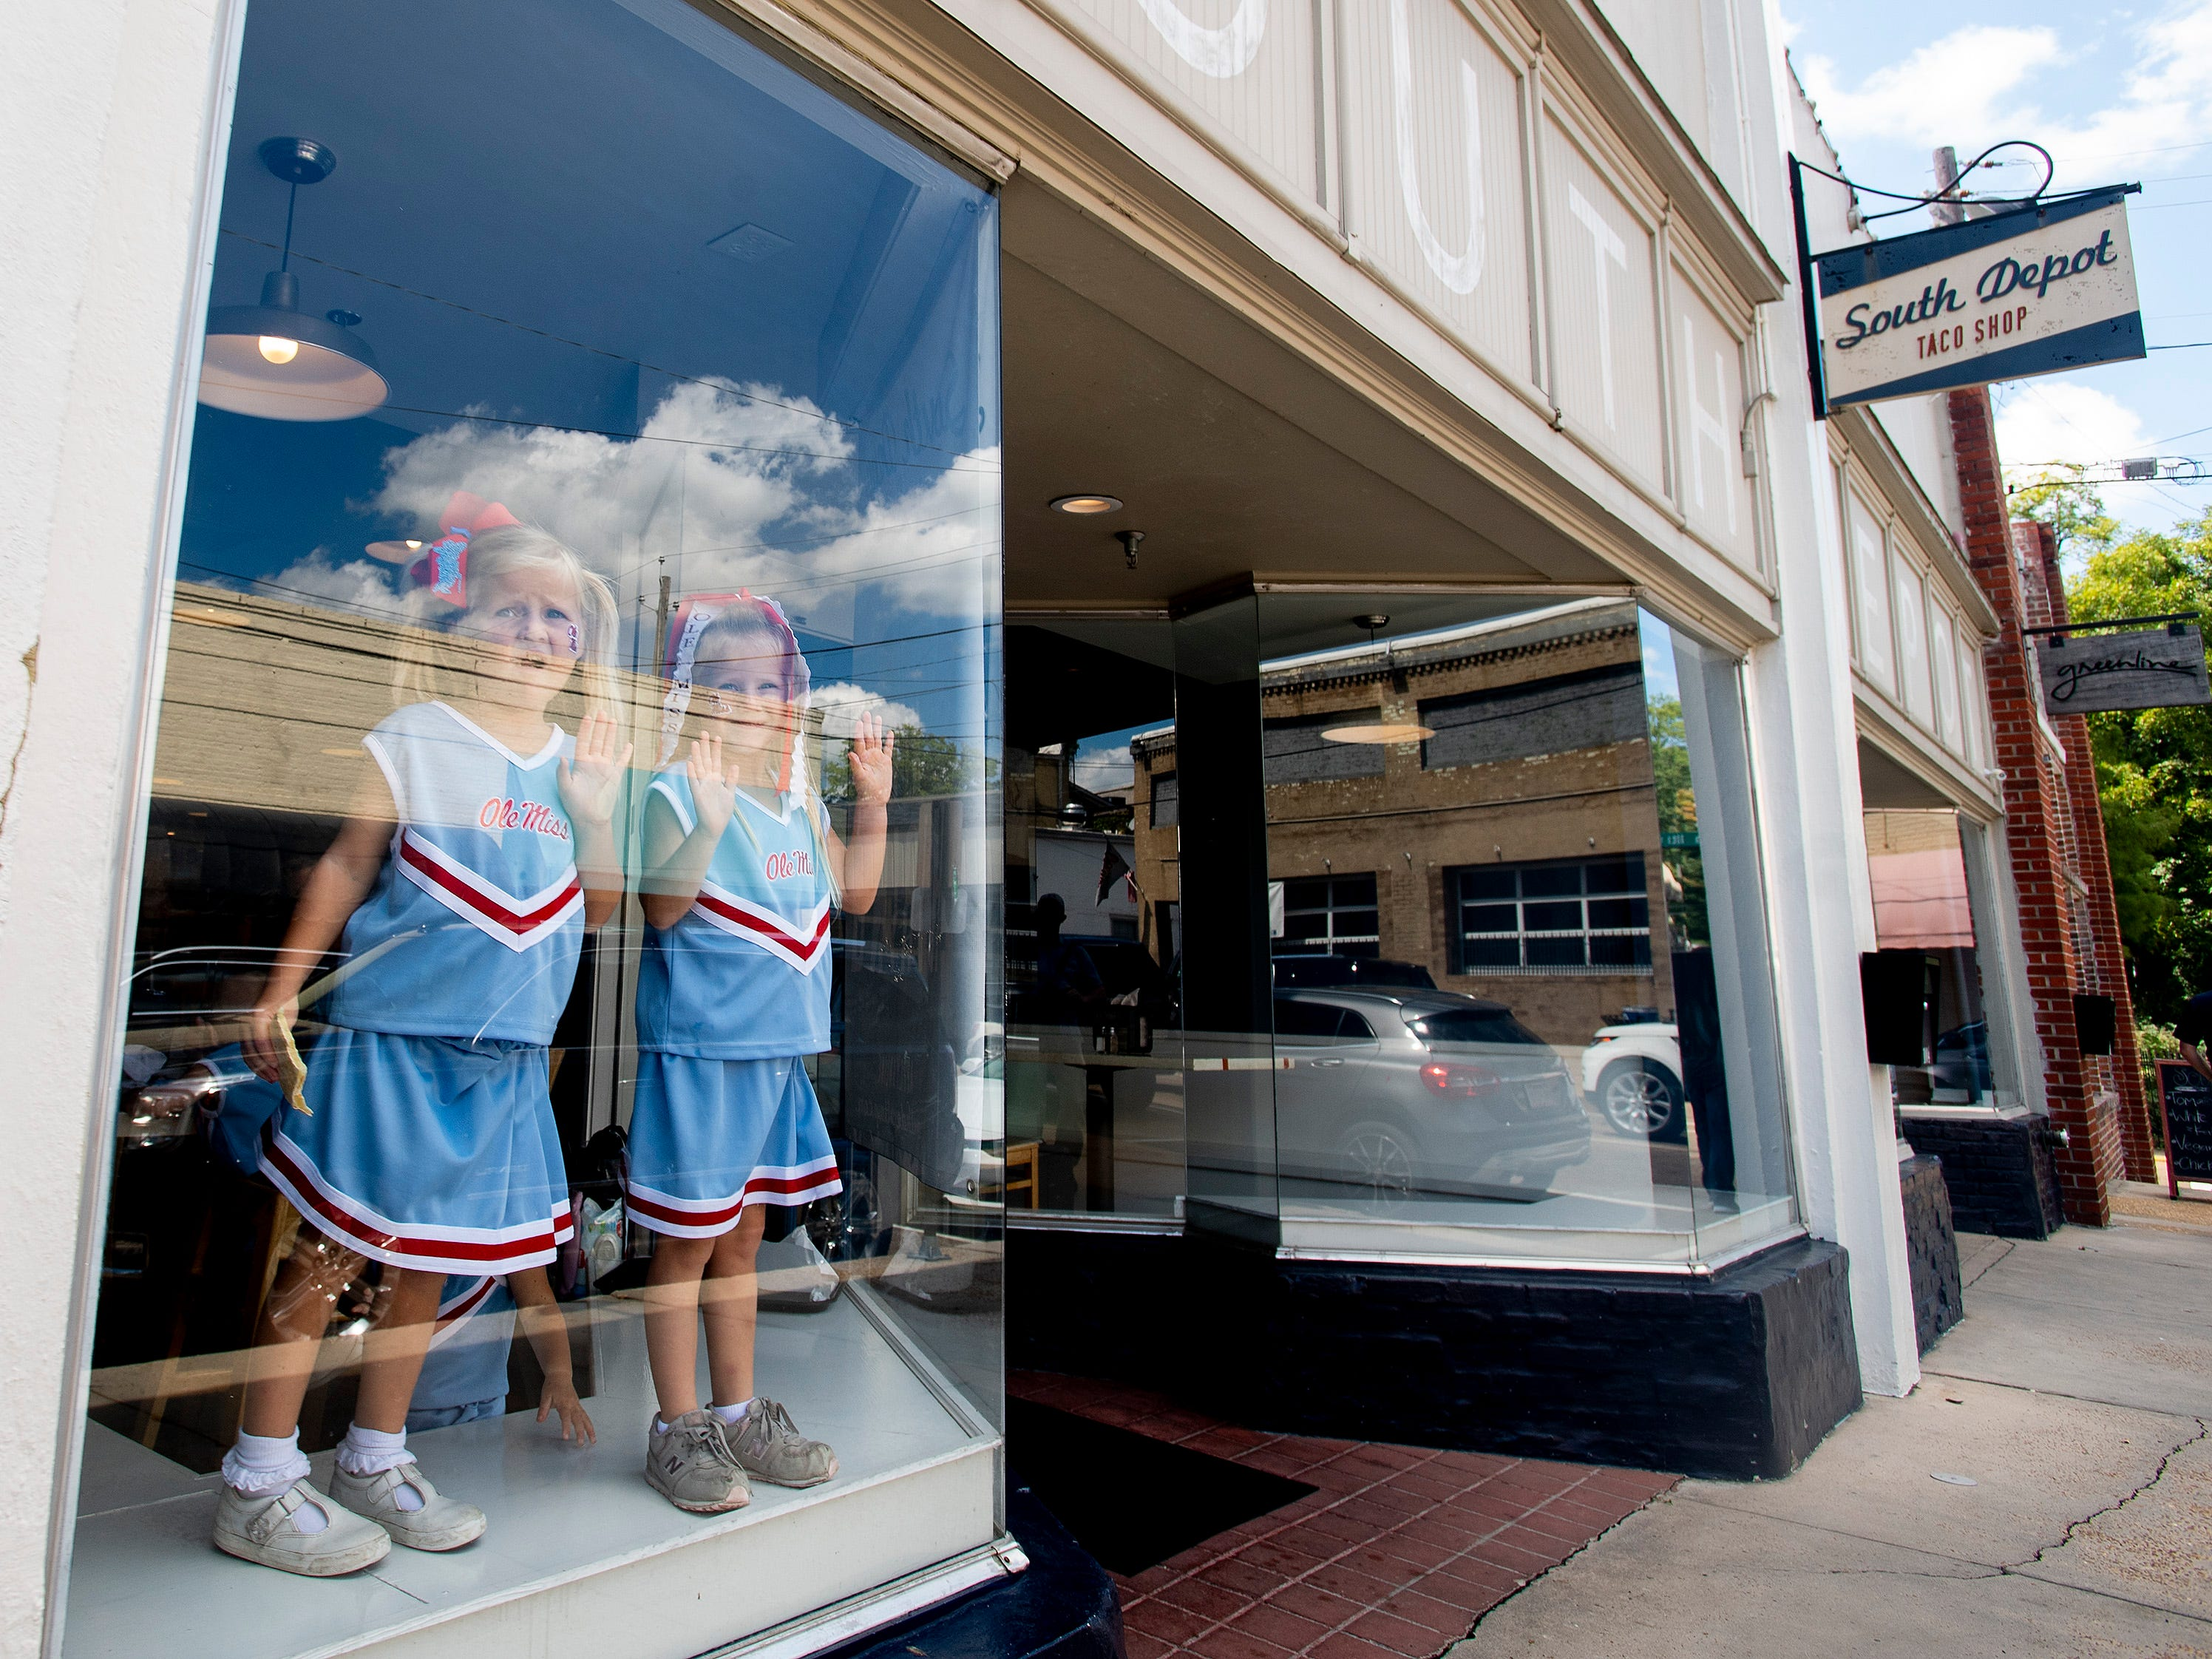 Young Ole Miss fans dressed as cheerleaders stand in a restaurant window in Oxford, Ms., on Saturday September 15, 2018.